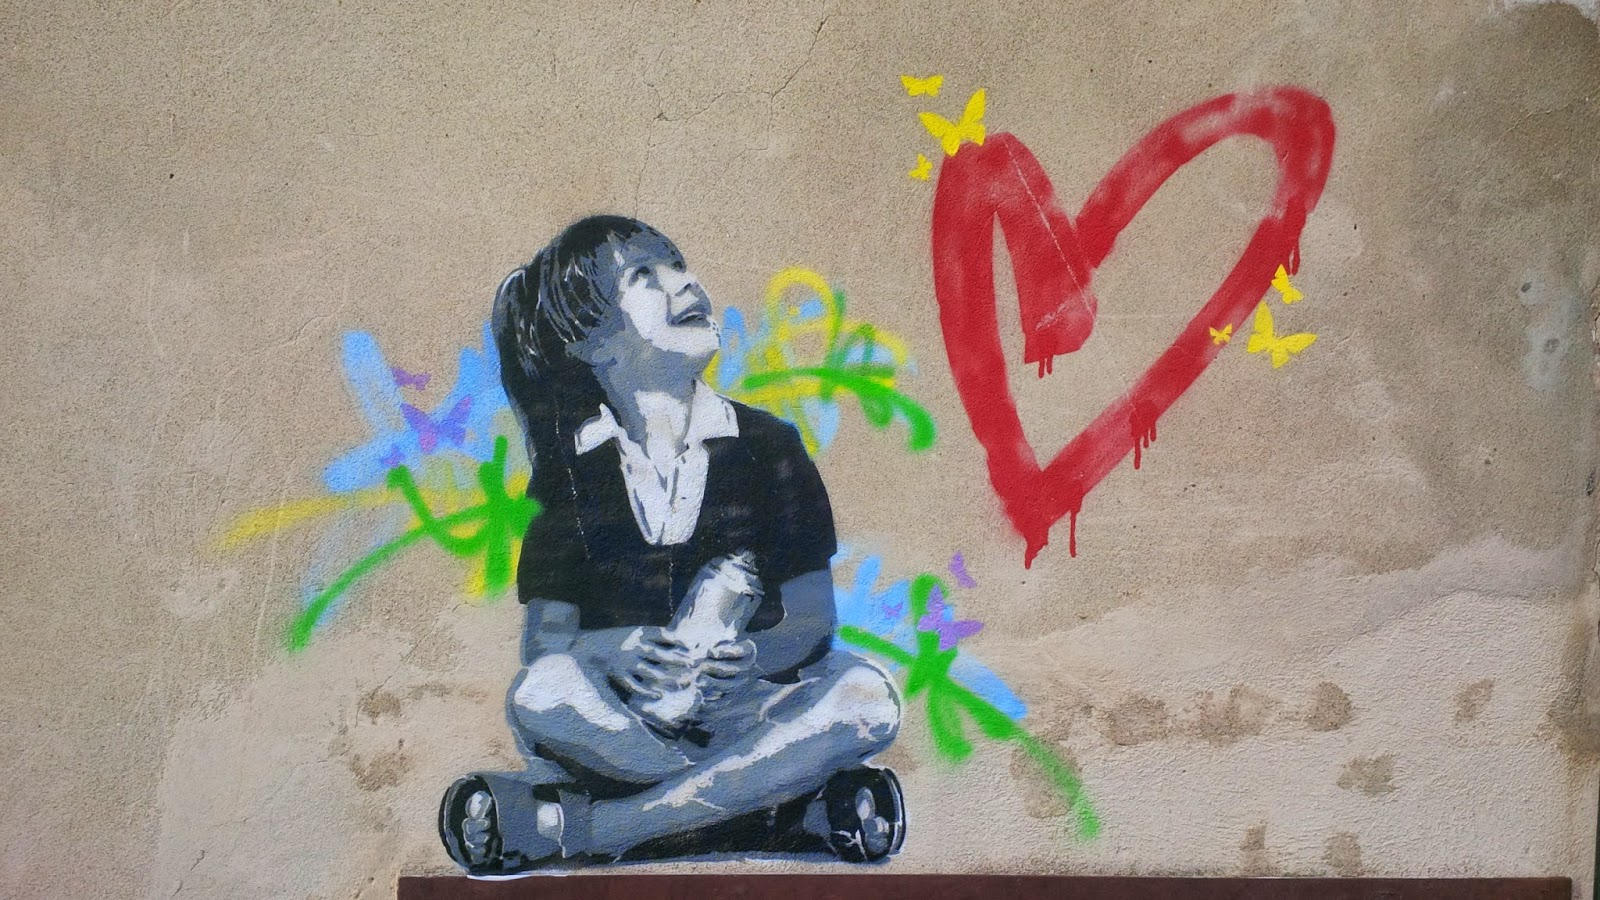 A grafitti in Arqua Petrarca to make your heart smile